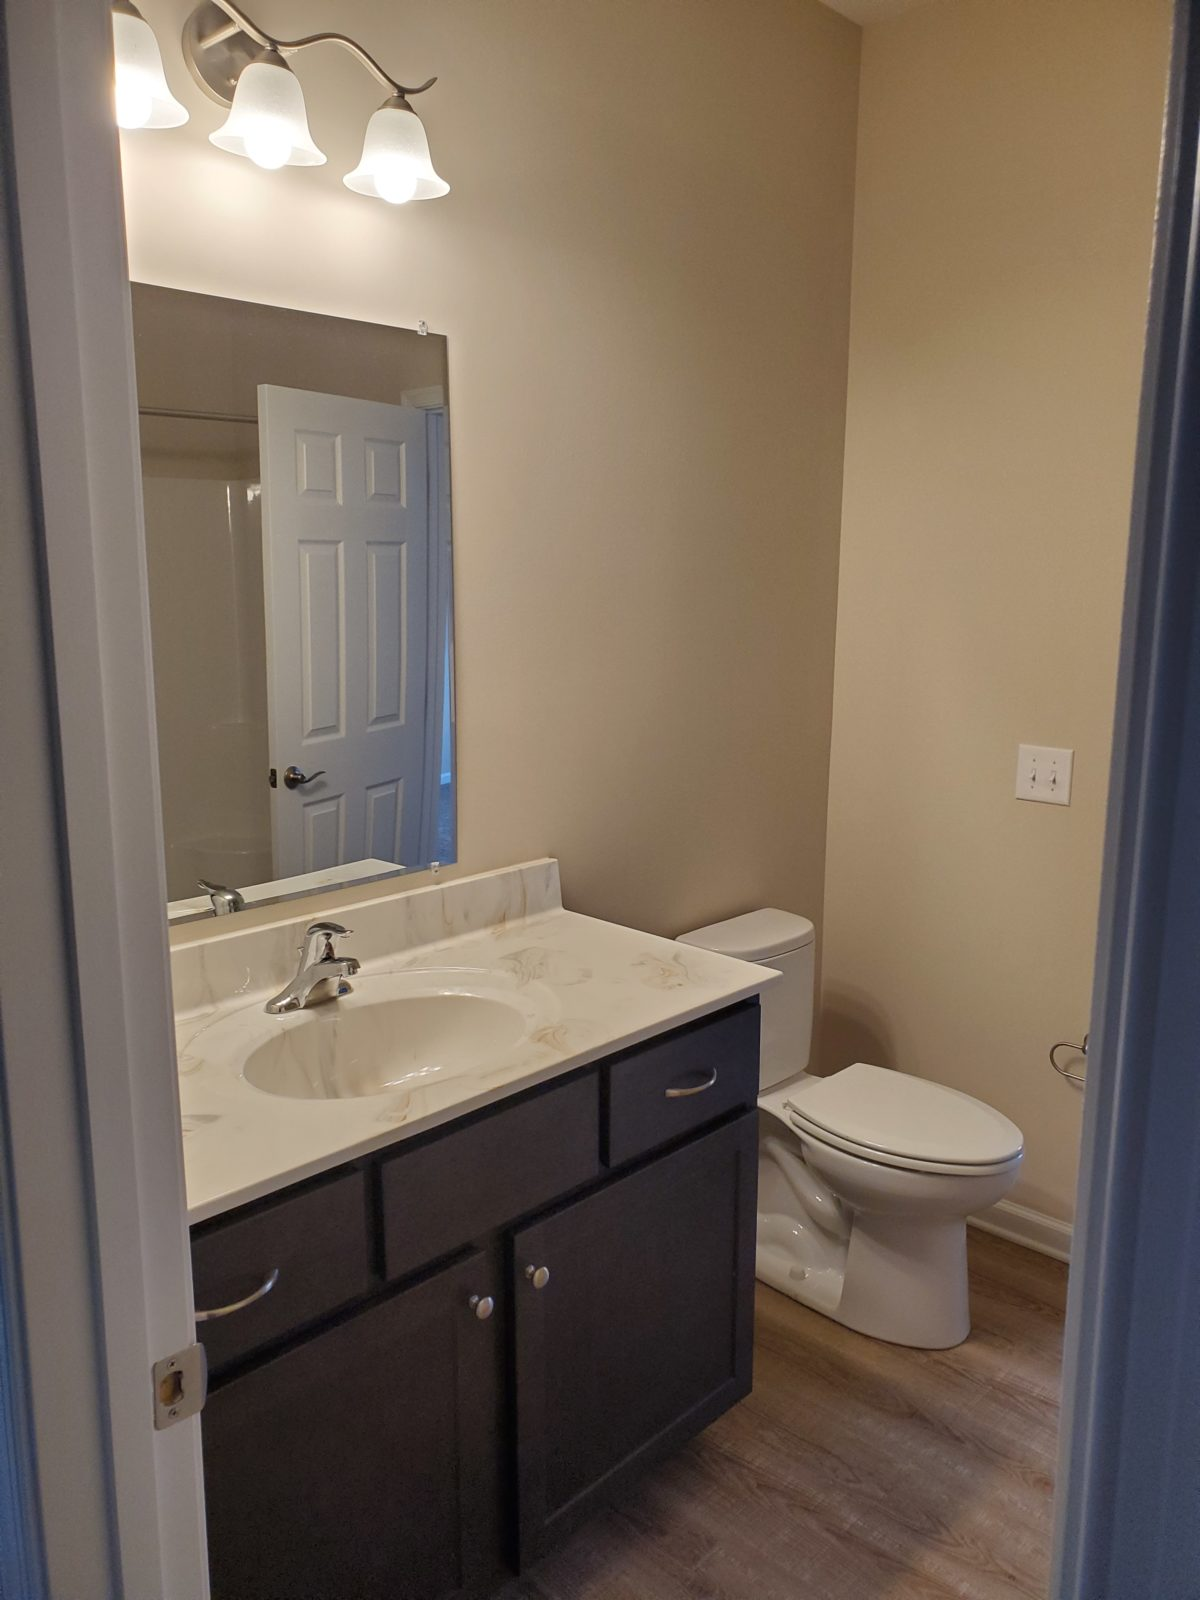 The Bath Remodel: Sizing Up Your Small Bathroom